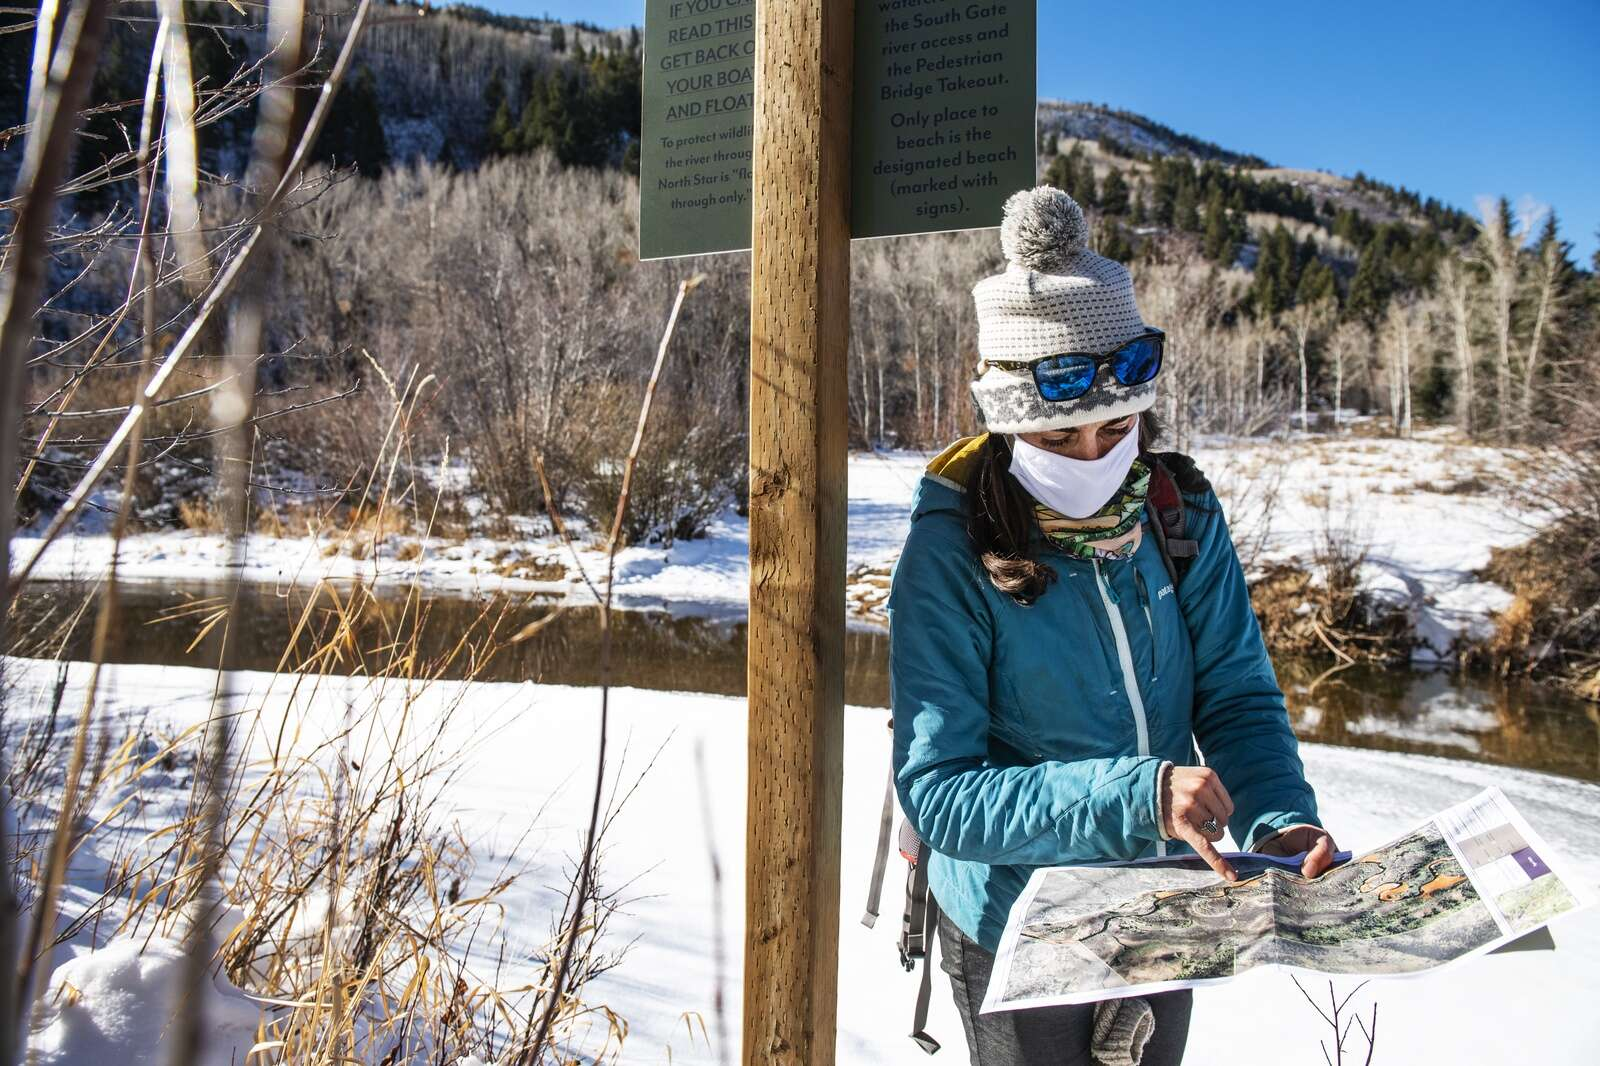 Pitkin County Open Space & Trails Liza Mitchell points out known active beaver lodges on a map of Northstar Nature Preserve in Aspen while scouting a place to put a wildlife camera near dams in this section of the Roaring Fork River on Friday, Dec. 4, 2020. (Kelsey Brunner/The Aspen Times)